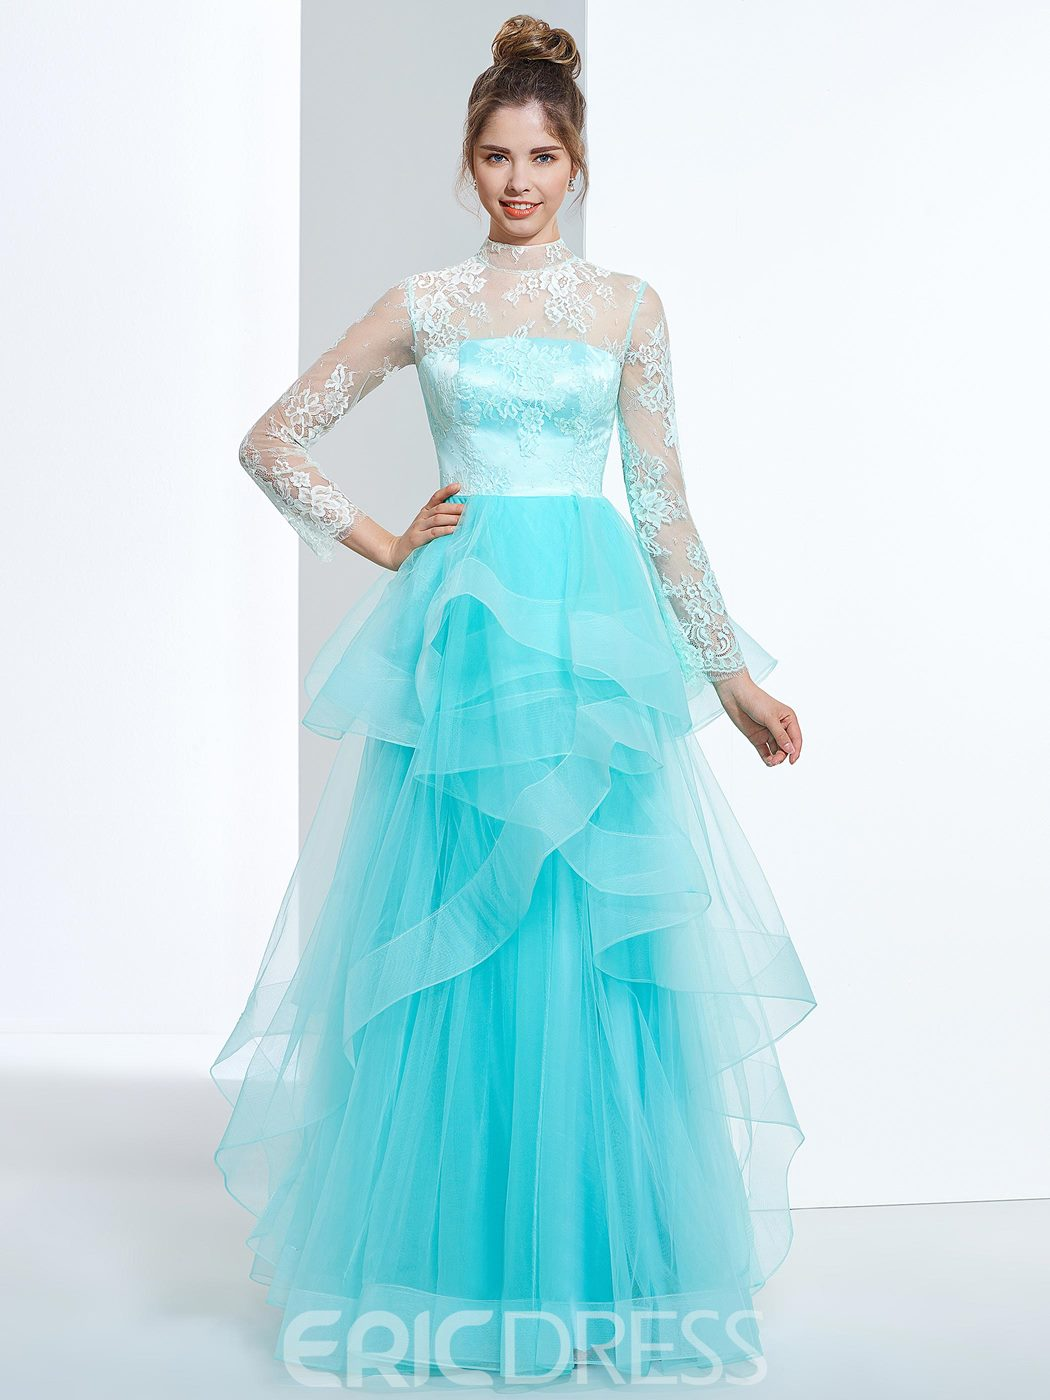 Ericdress A-Line High Neck Long Sleeves Button Lace Tiered Floor-Length Prom Dress